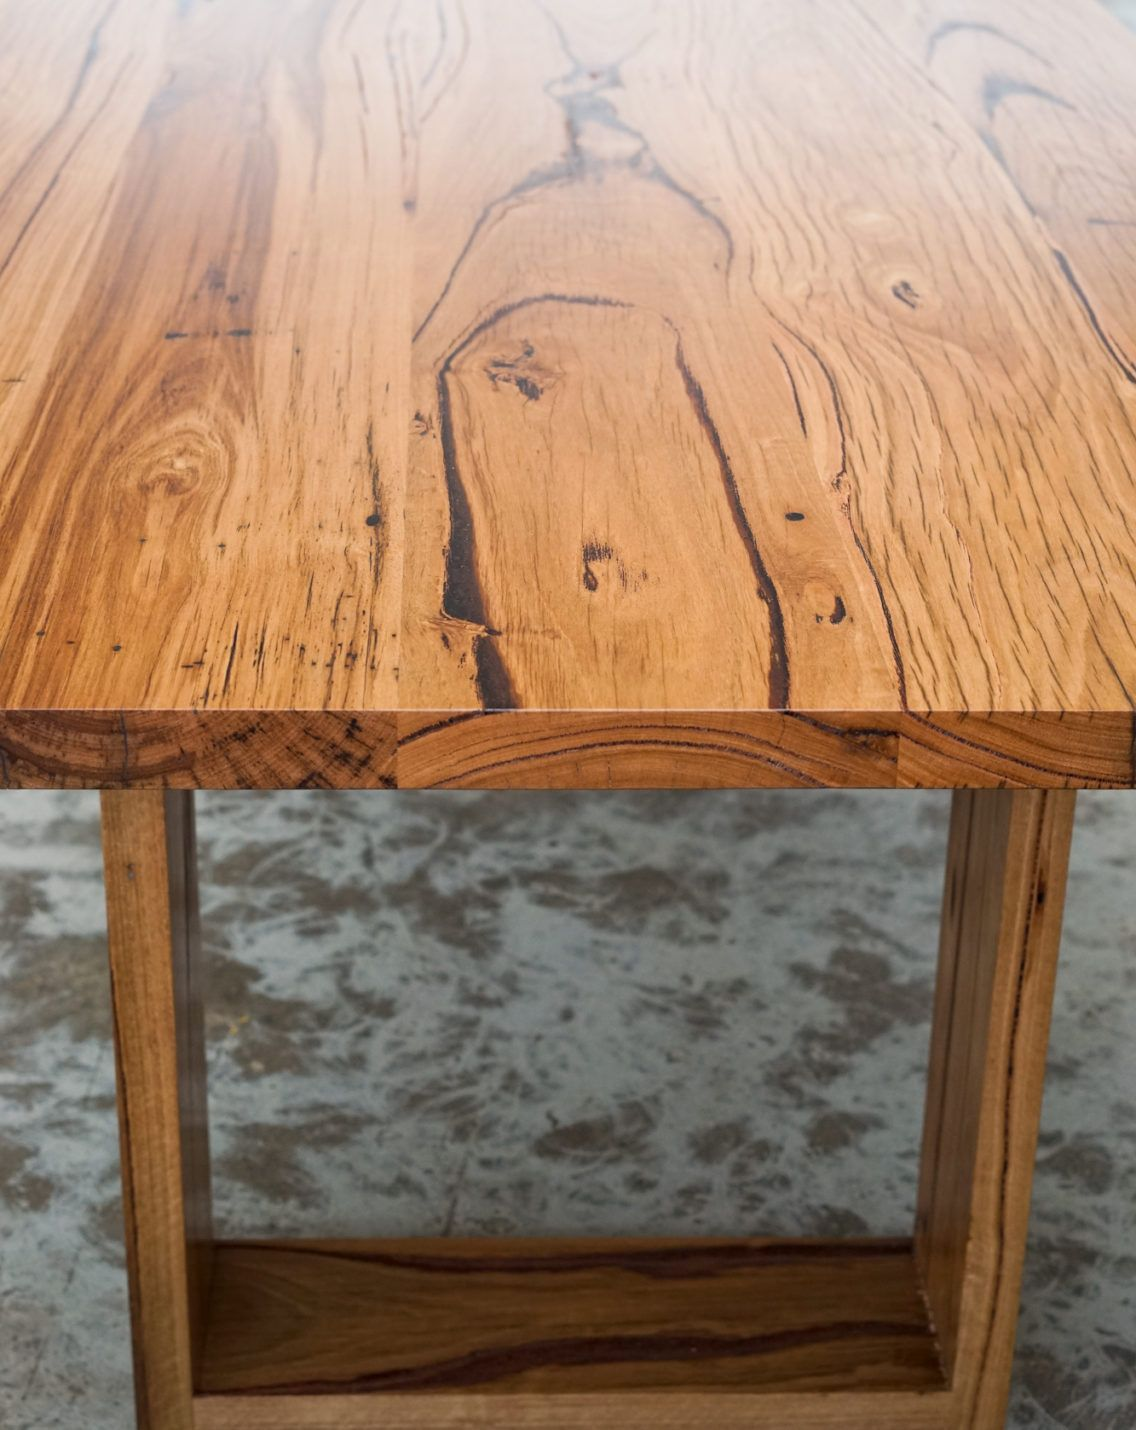 The master of ceremonies dining table features the ever popular